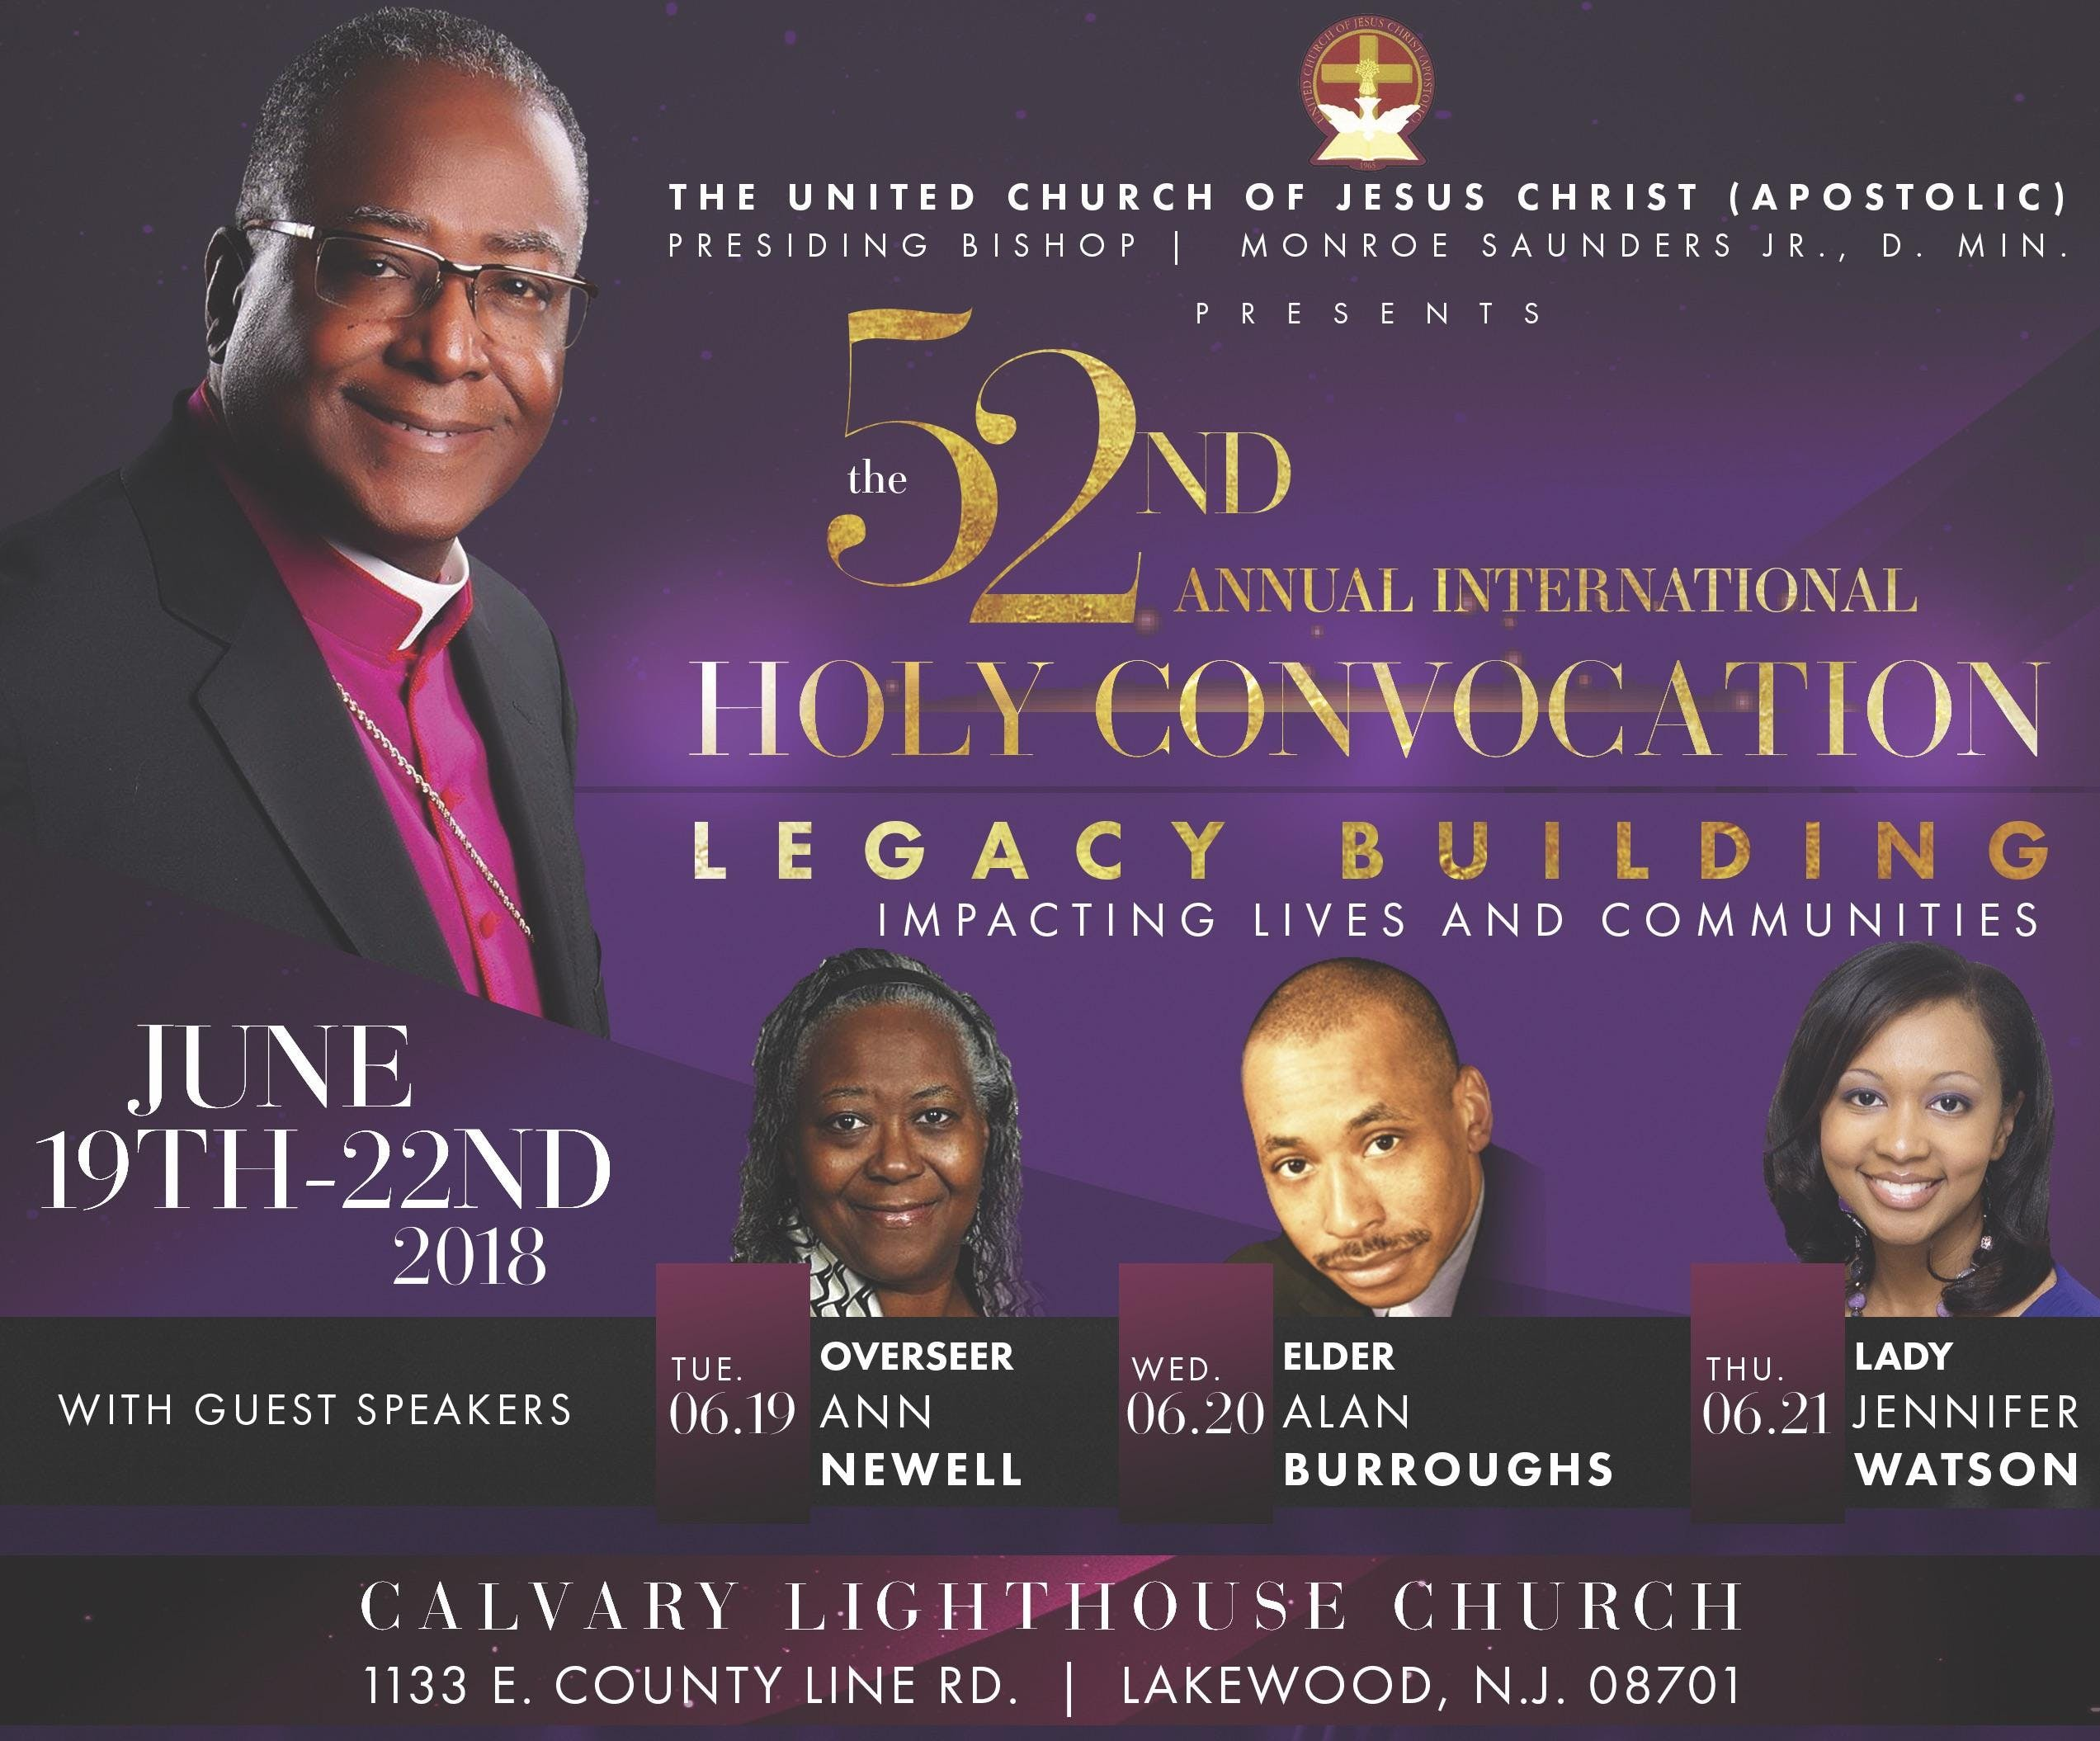 52nd Annual International Holy Convocation